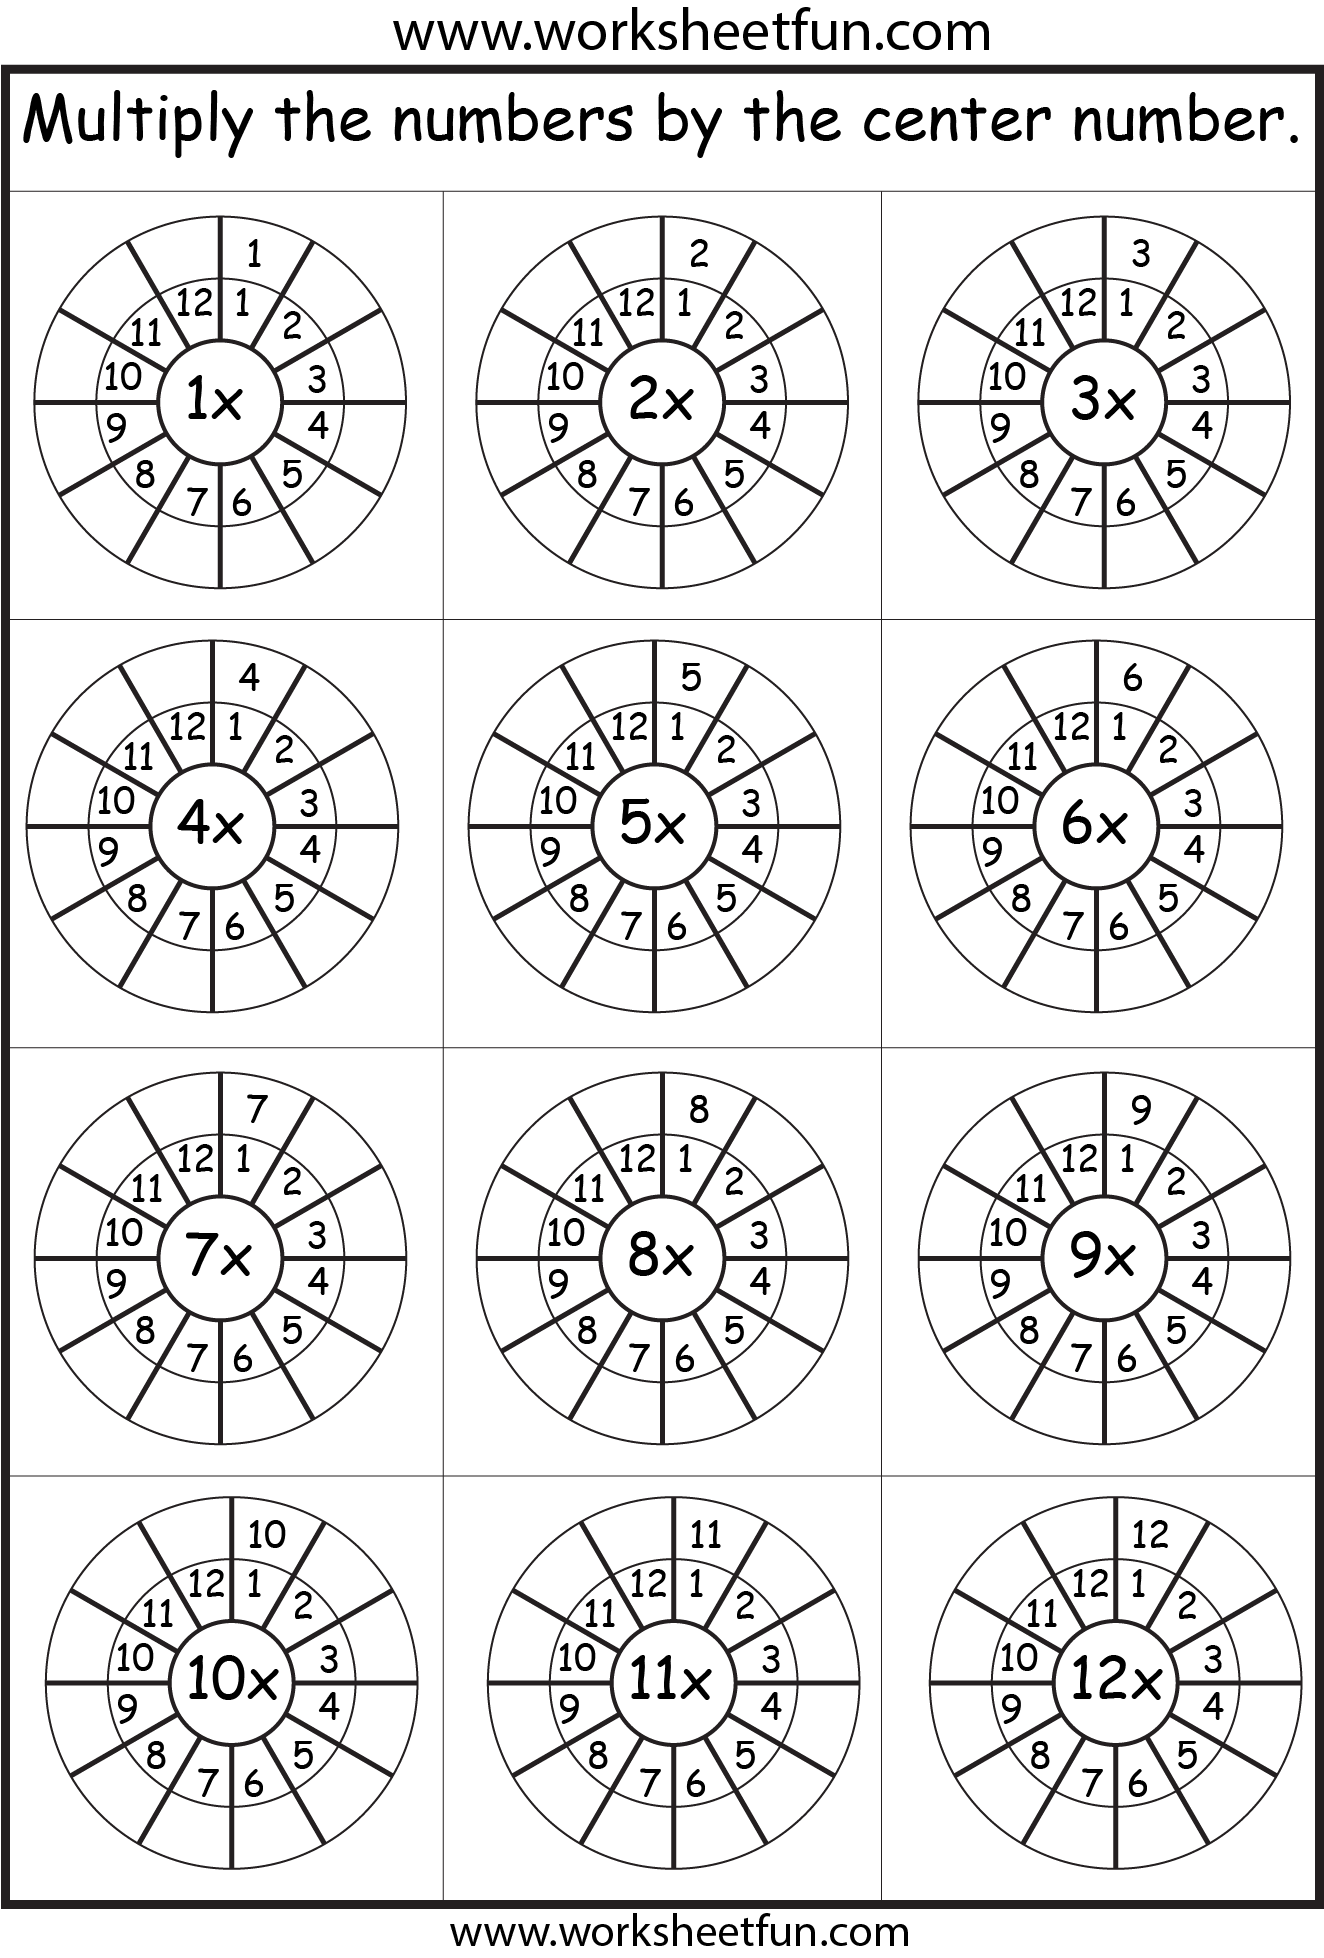 Times Table Worksheet 1 12 Times Tables One Worksheet Free Printable Worksheets Worksheetfun